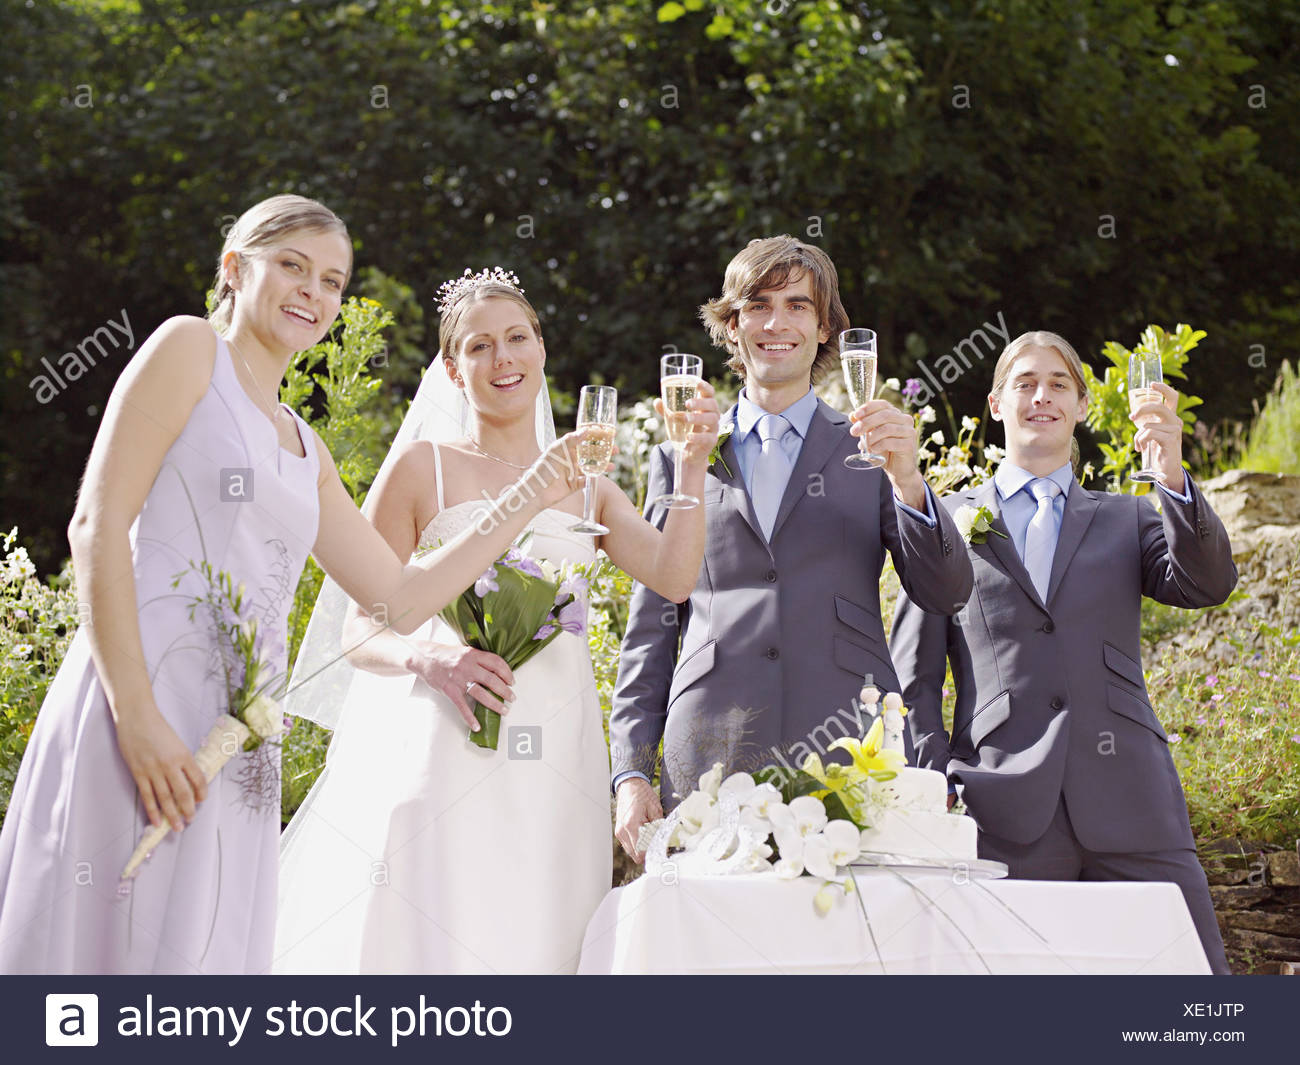 bride and groom toasting with guests stock photo 284007830 alamy